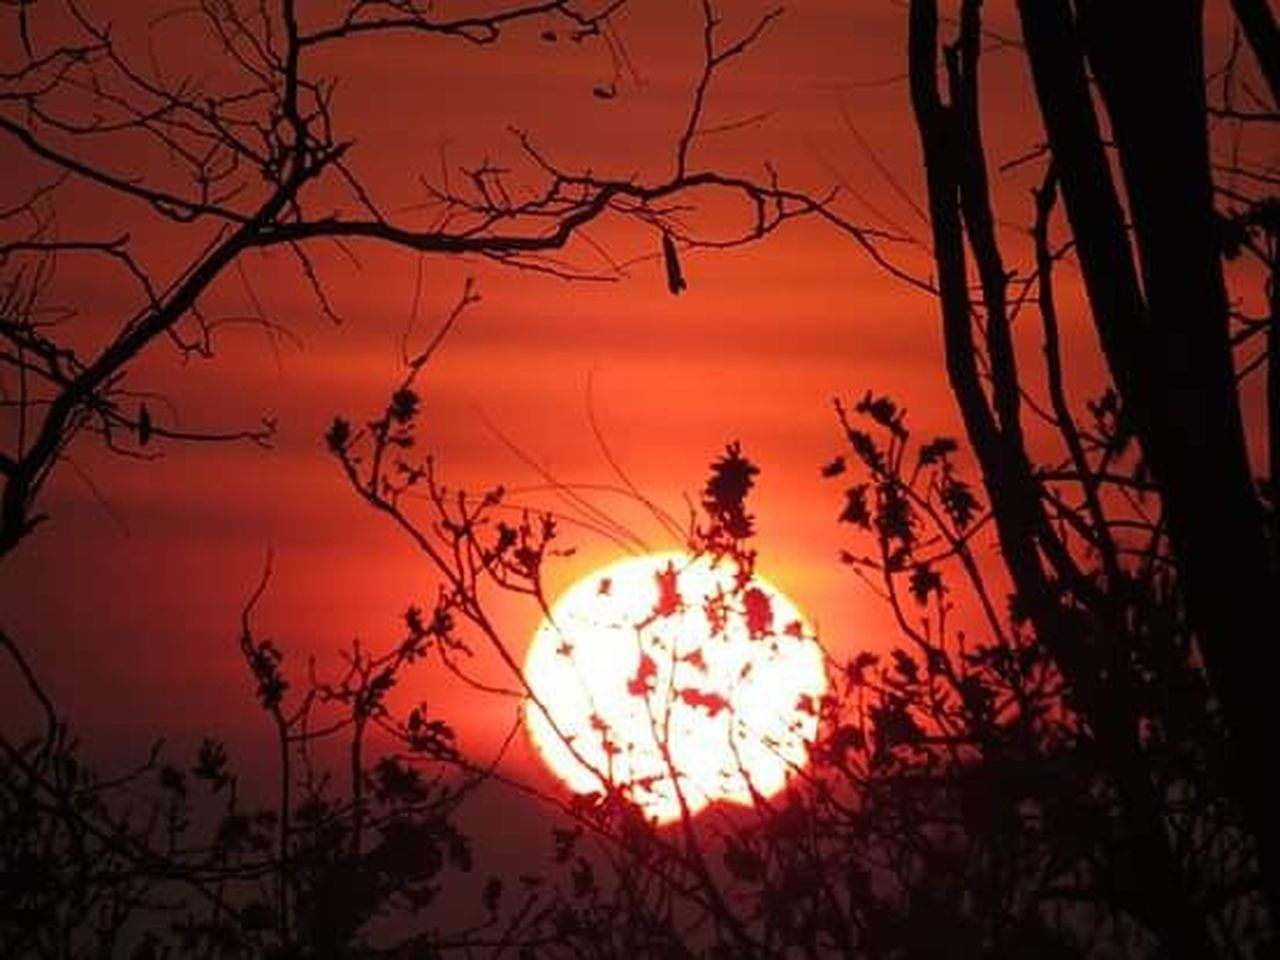 sunset, silhouette, tree, sun, outdoors, nature, branch, sky, no people, scenics, bare tree, beauty in nature, red, moon, dawn, illuminated